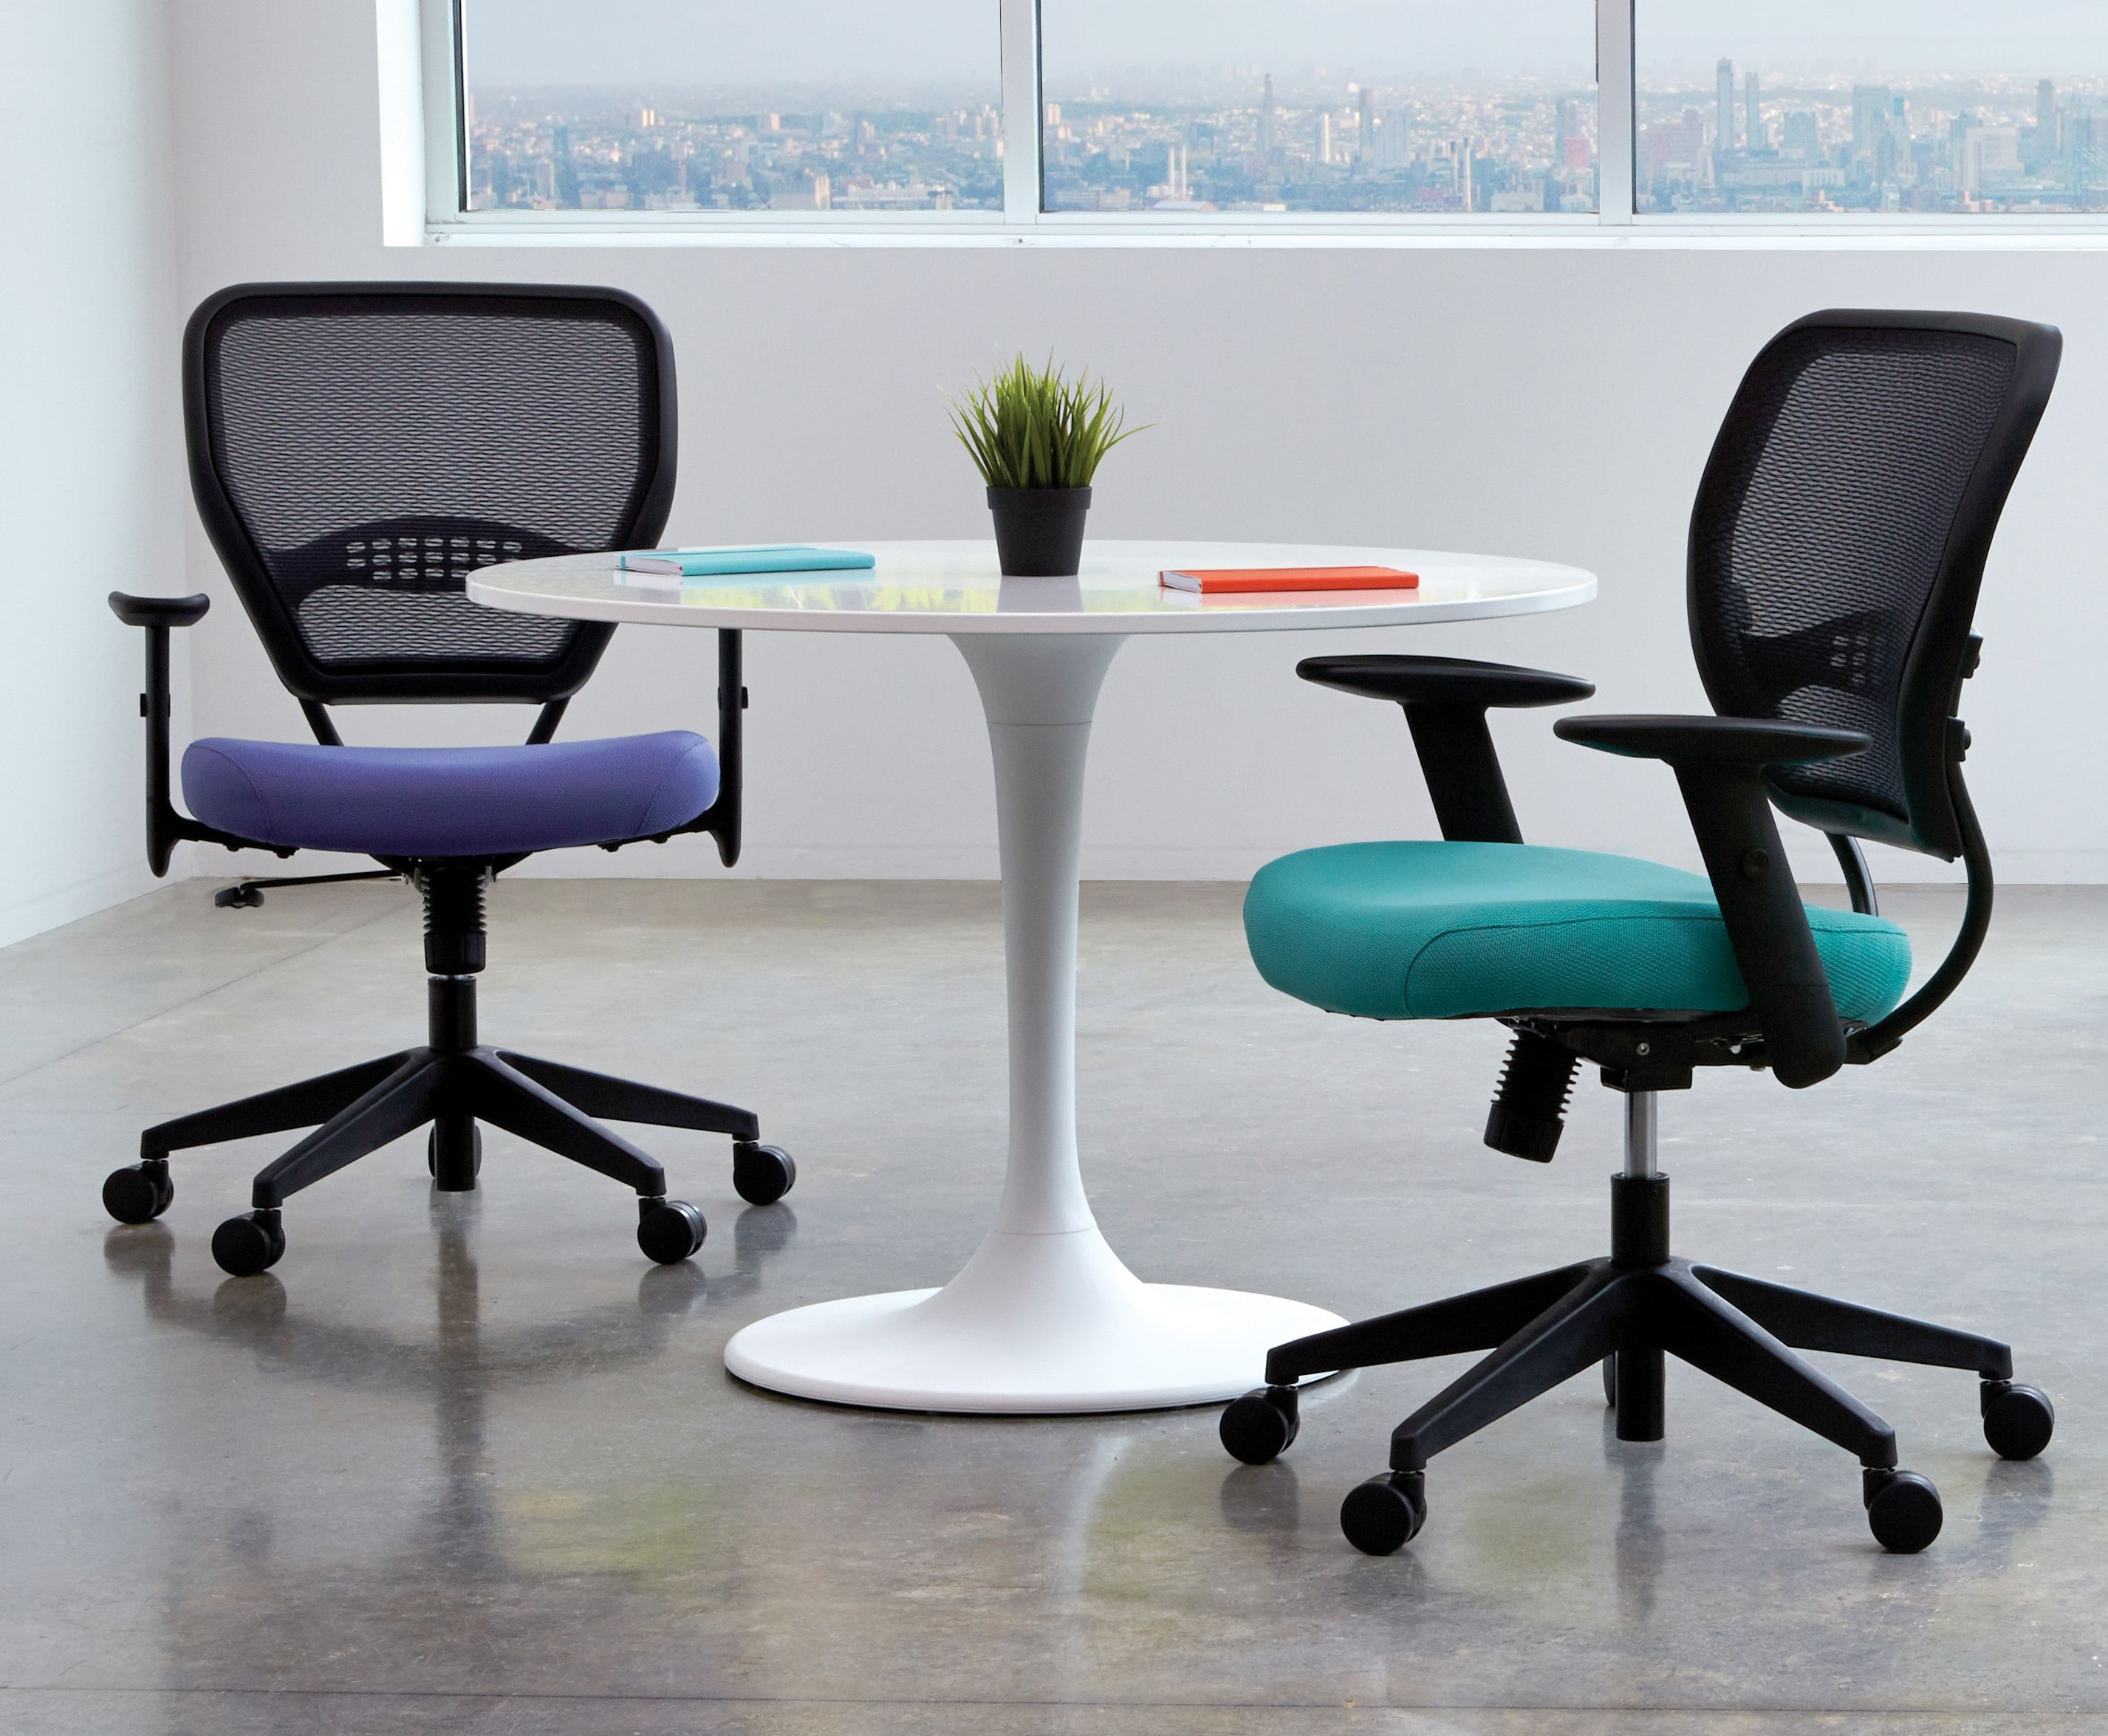 Have More Fun At The Office With Thespace Seating 5500 In Our Fun